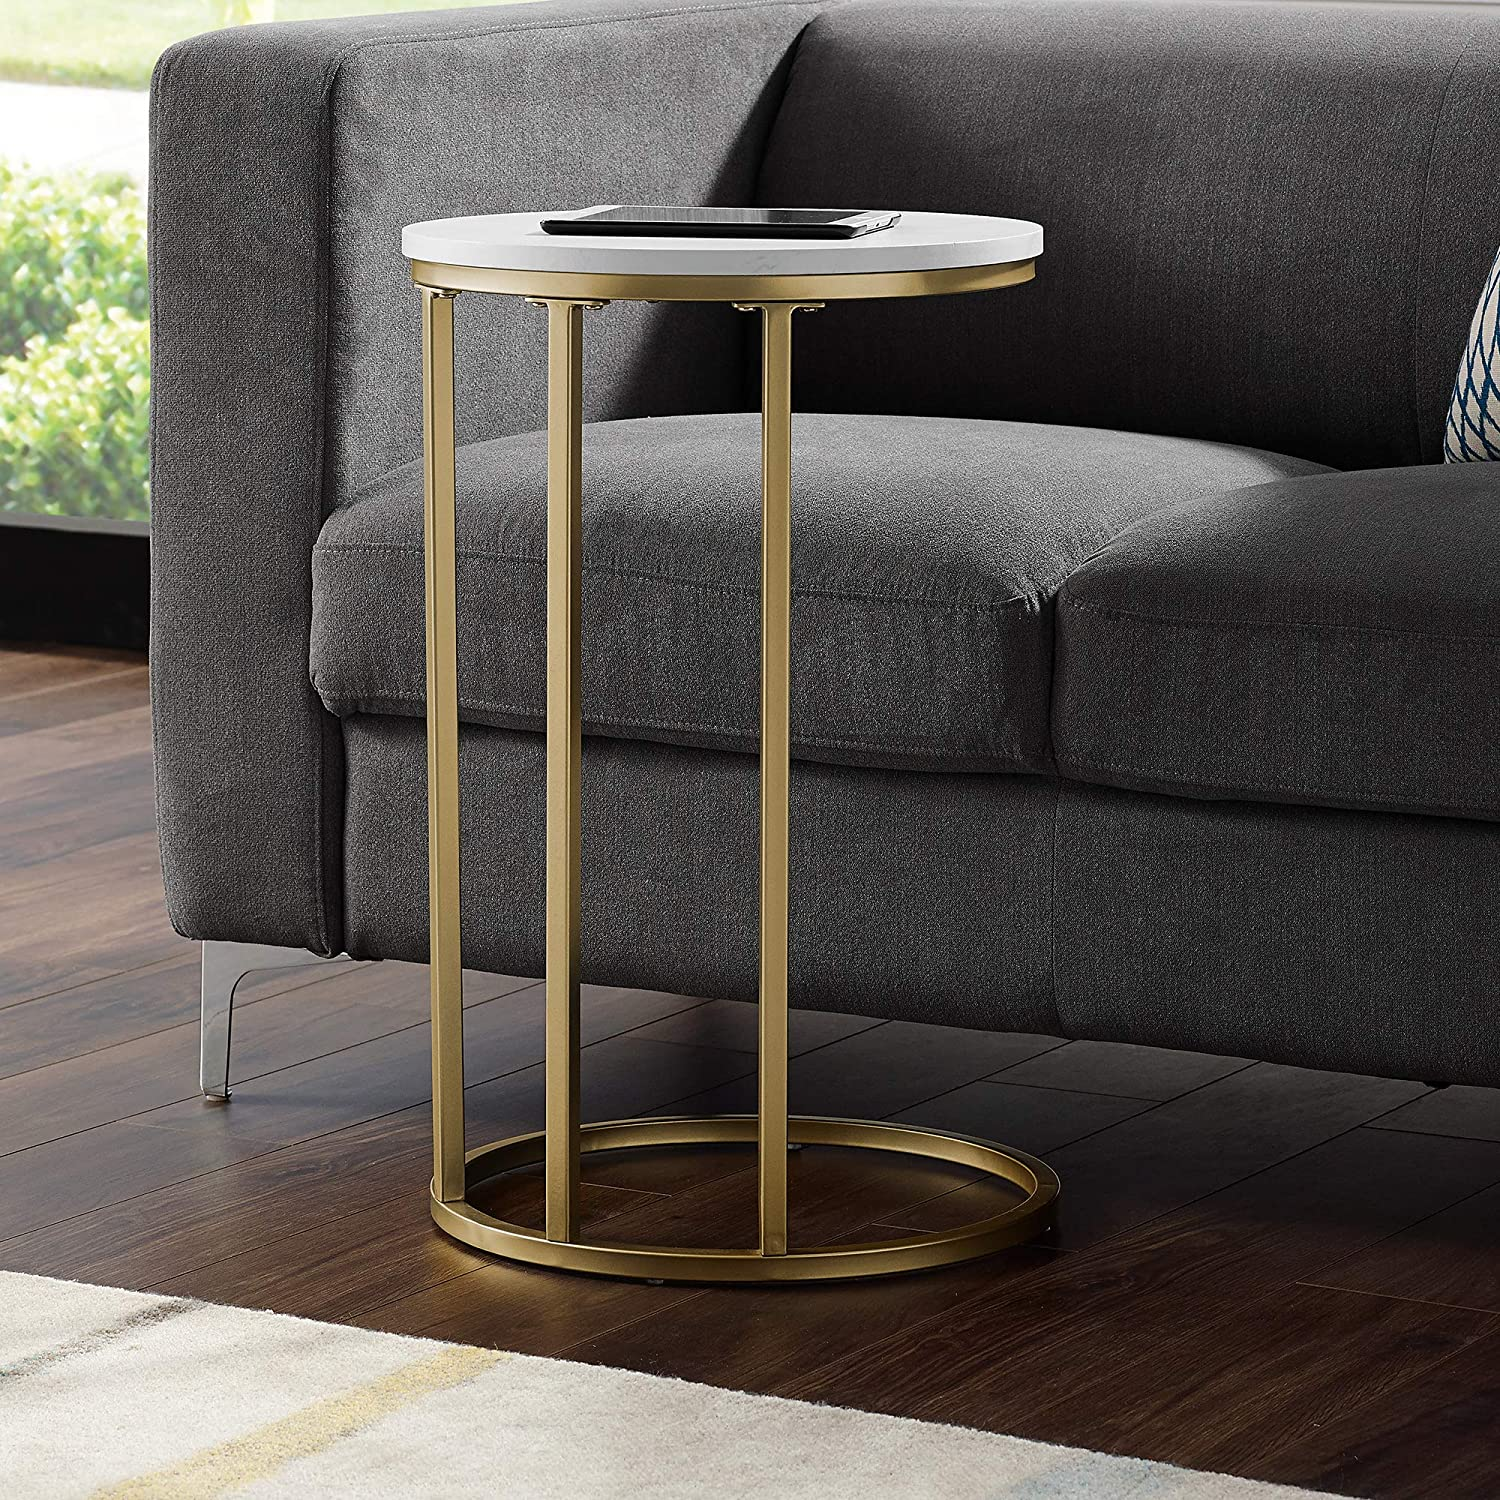 Walker Edison WE Furniture 16  Modern Round End Table-White Marble Top, gold Base